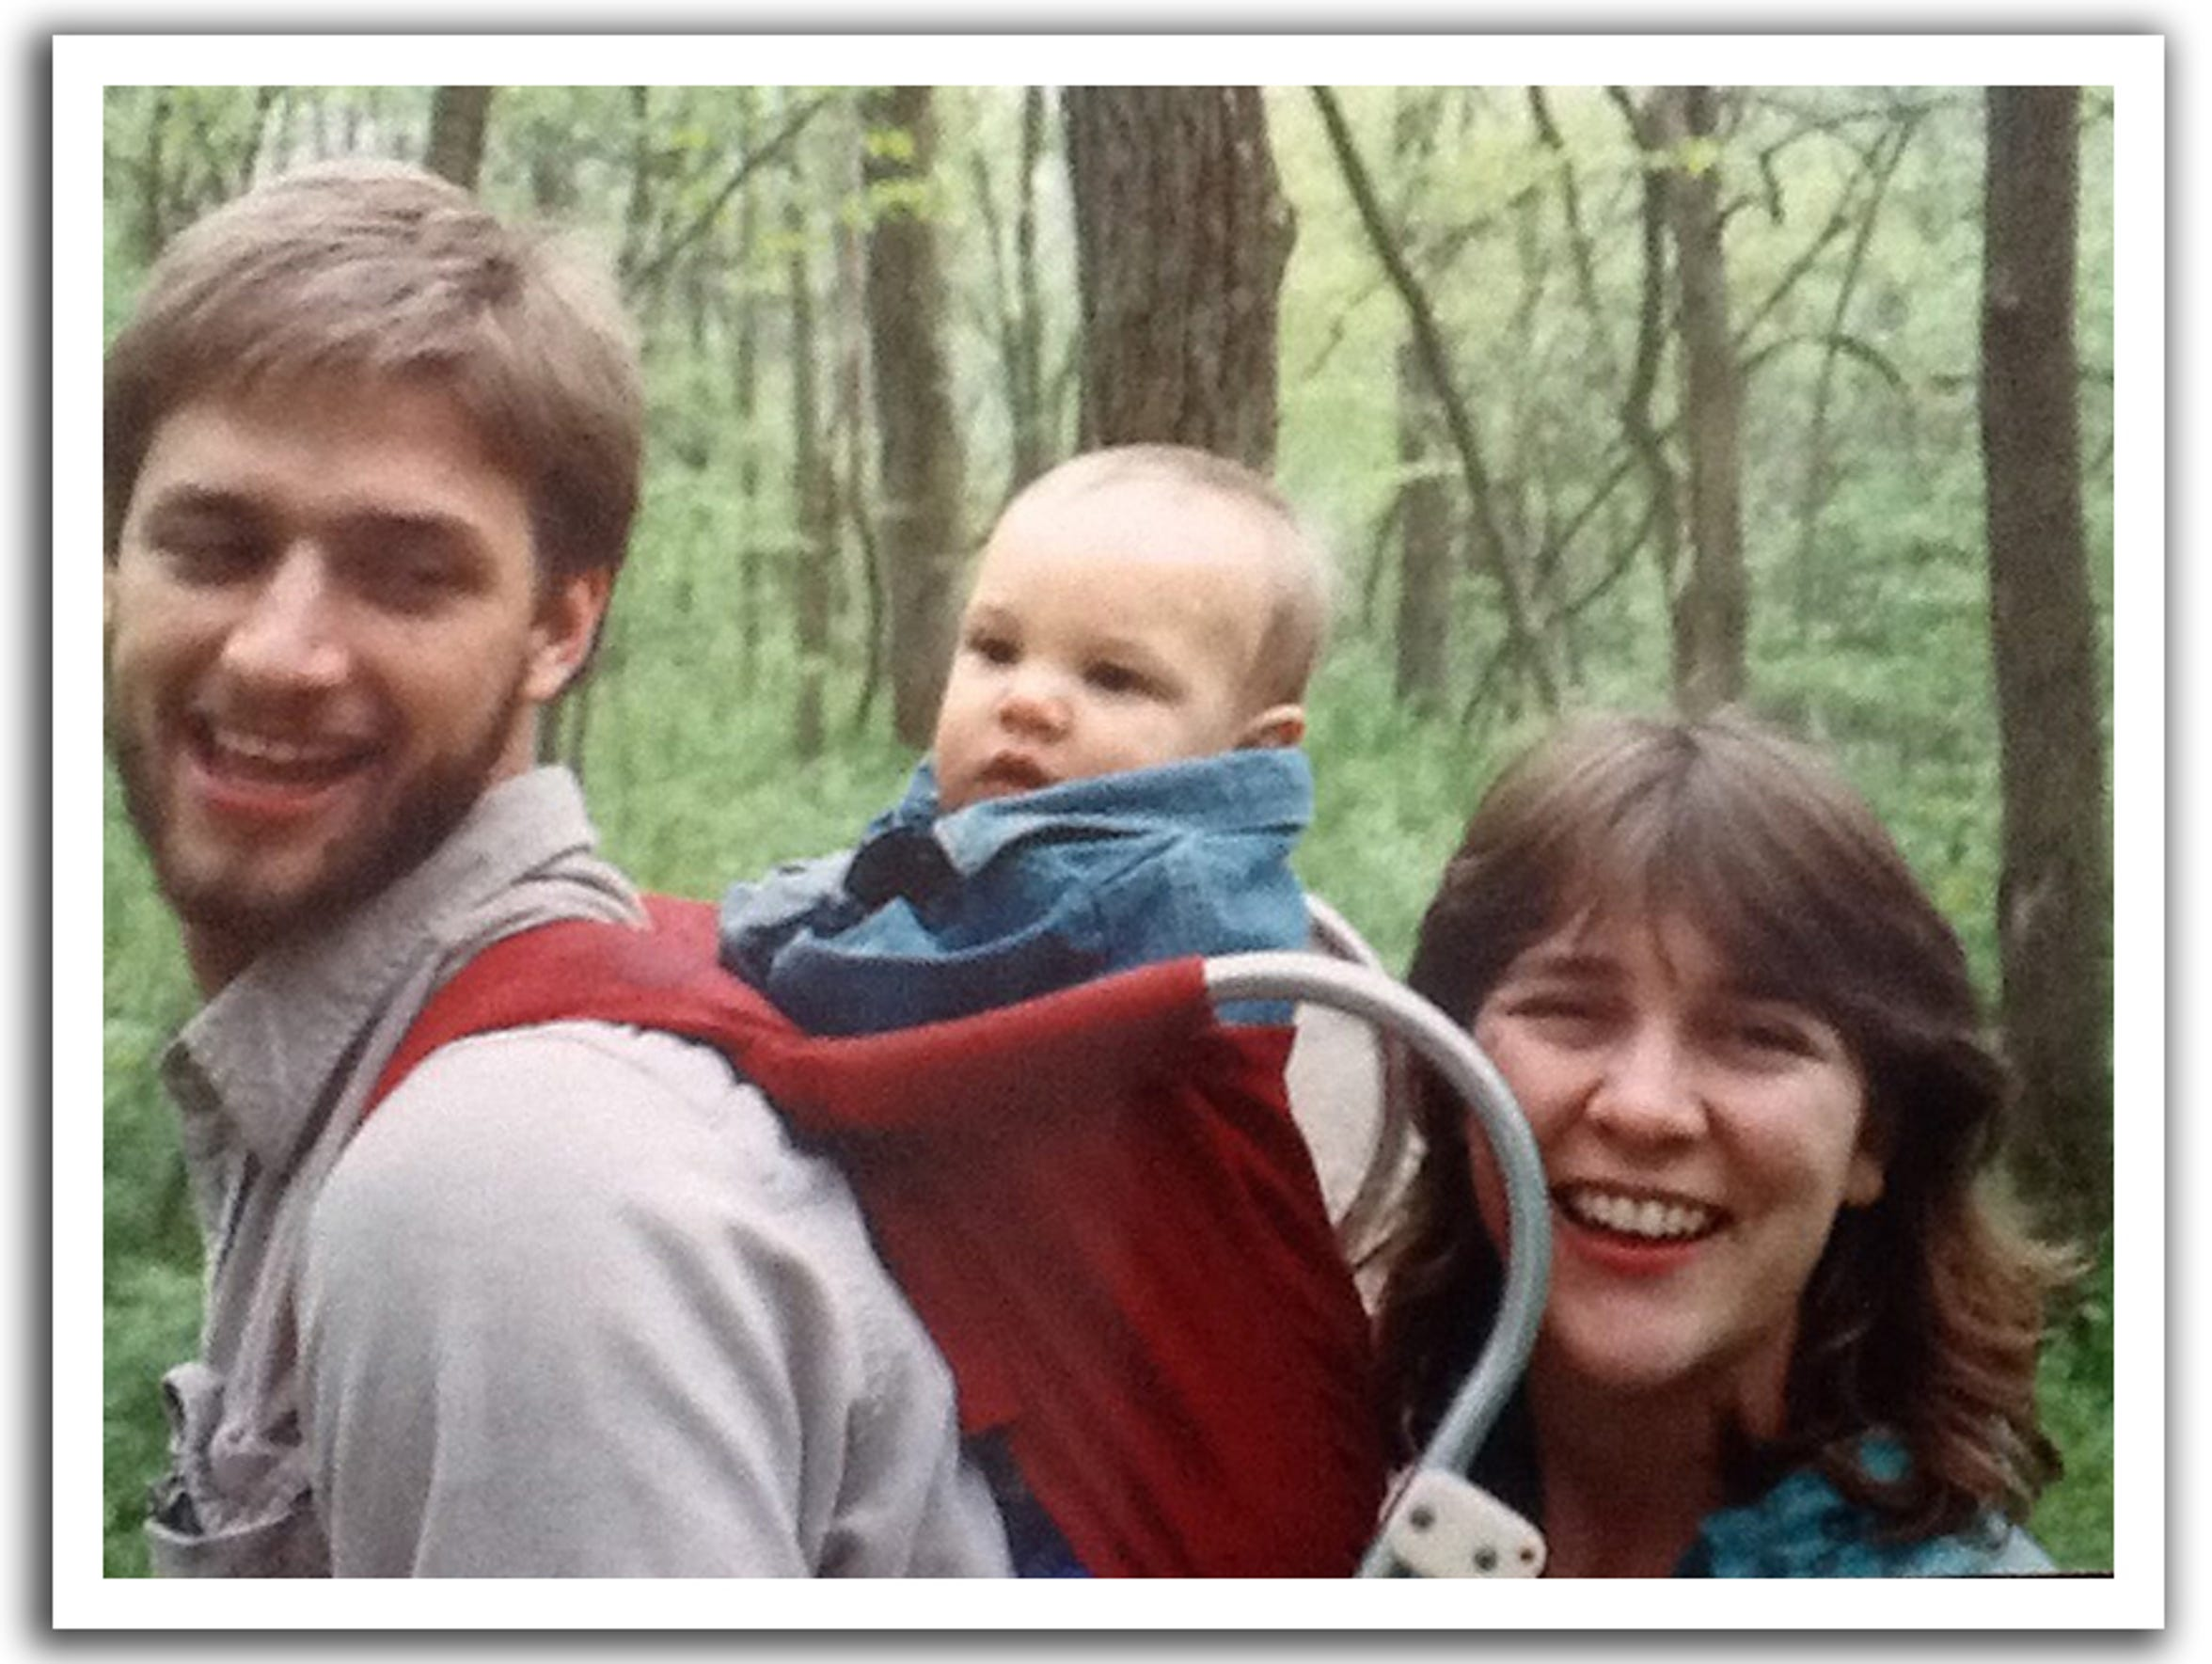 Joe and his first wife, Becky, with son Alex. Becky